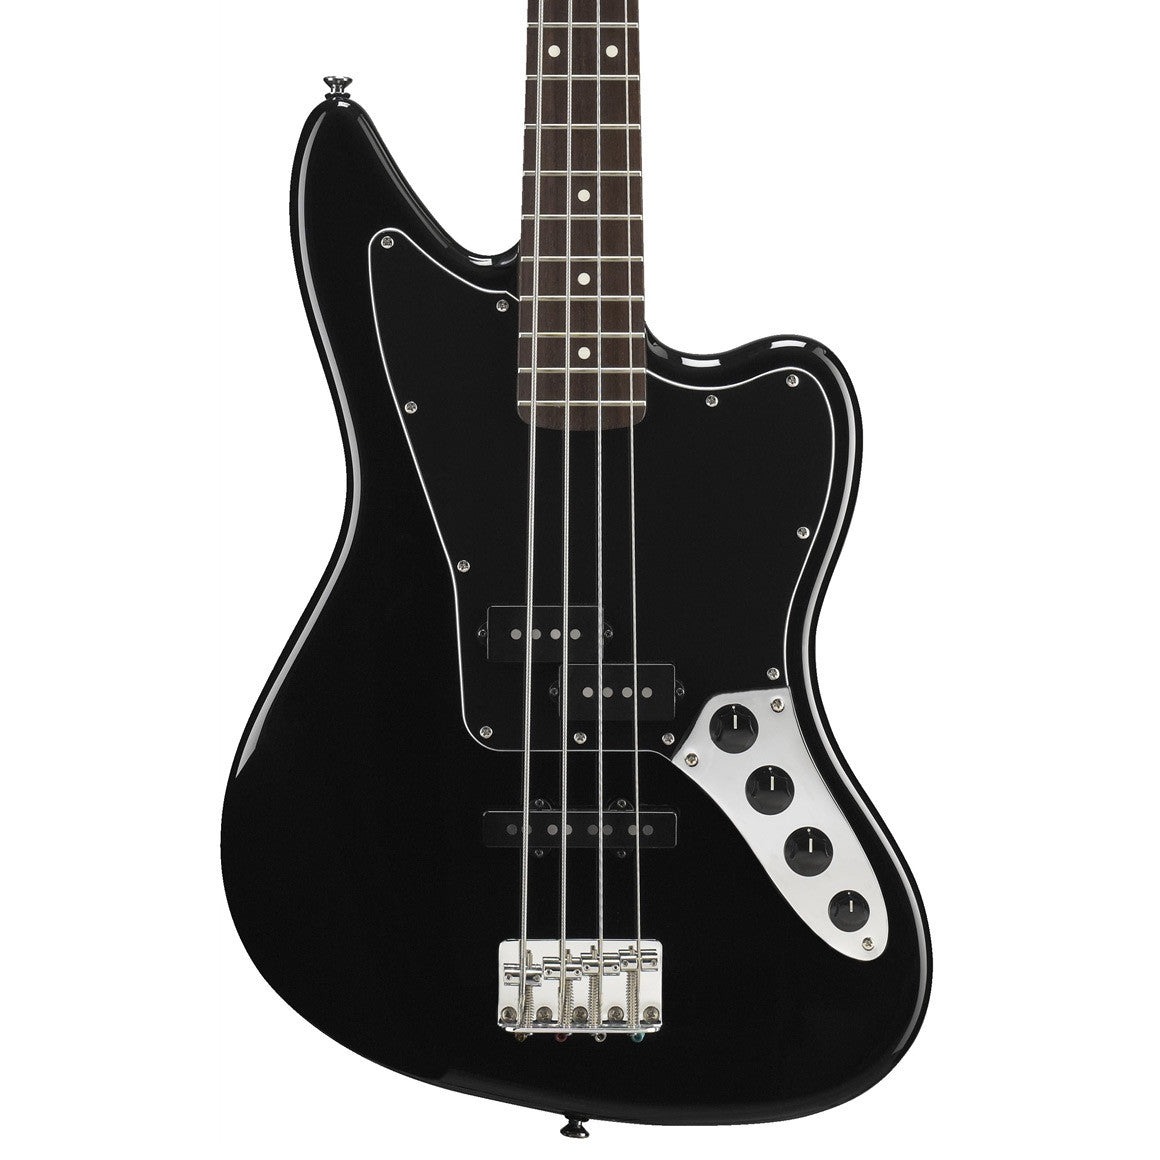 squier vintage modified jaguar bass special black mass street music store. Black Bedroom Furniture Sets. Home Design Ideas